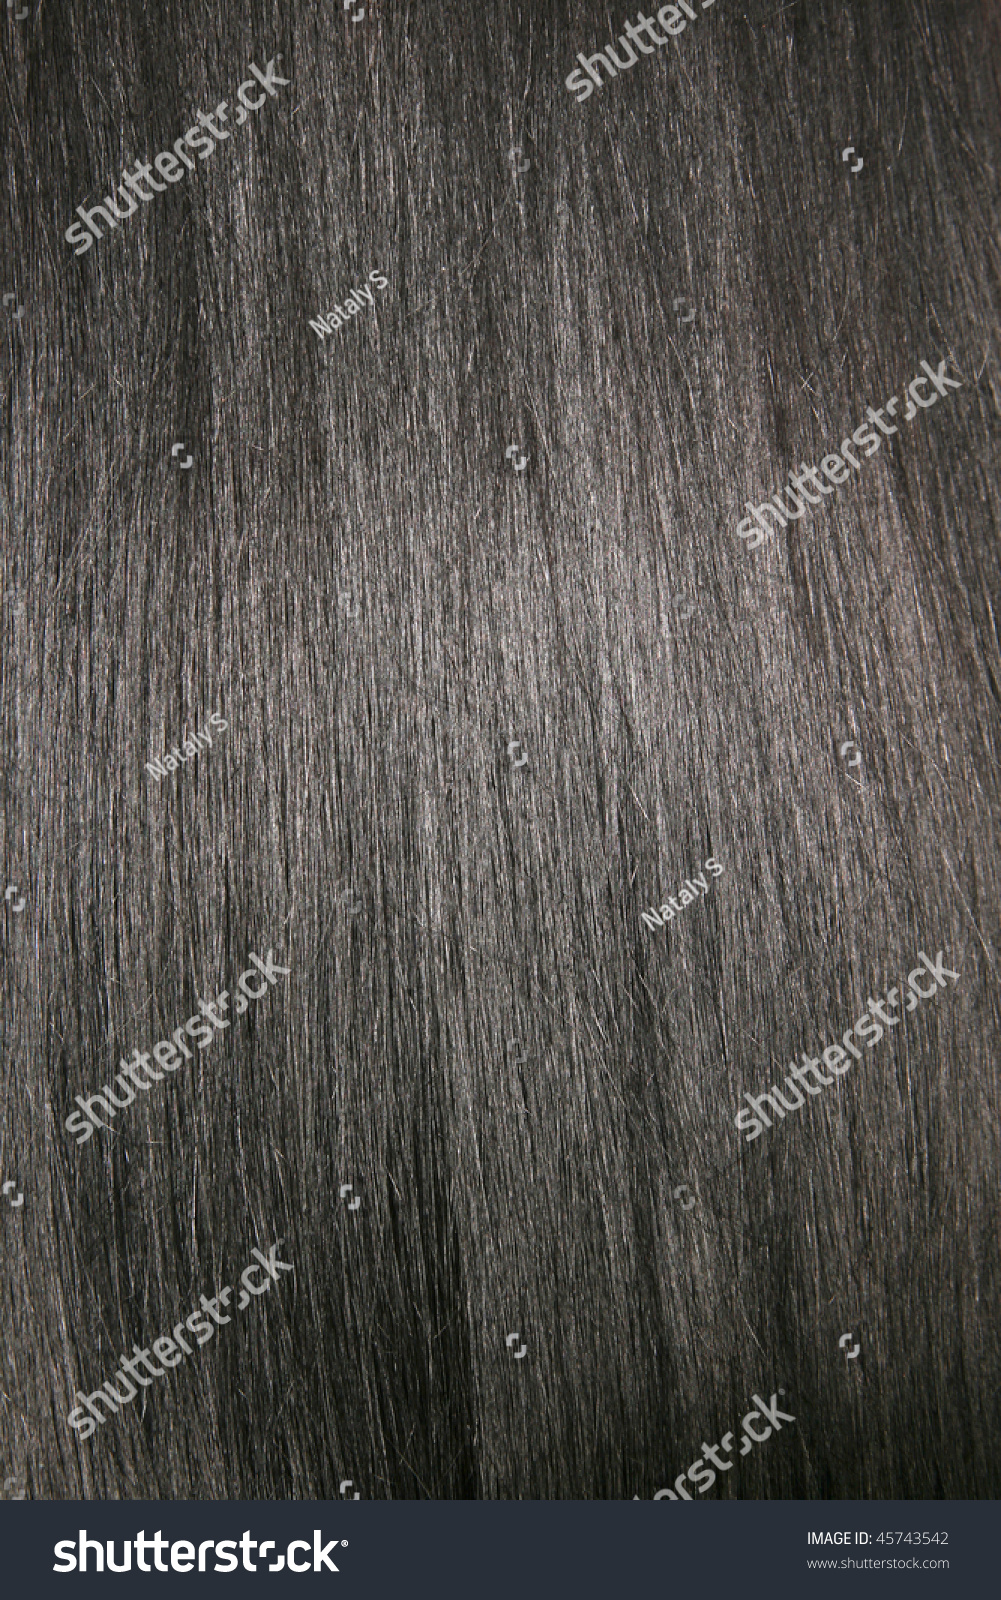 Beautiful Shiny Black Hair Texture Background Stock Photo ...